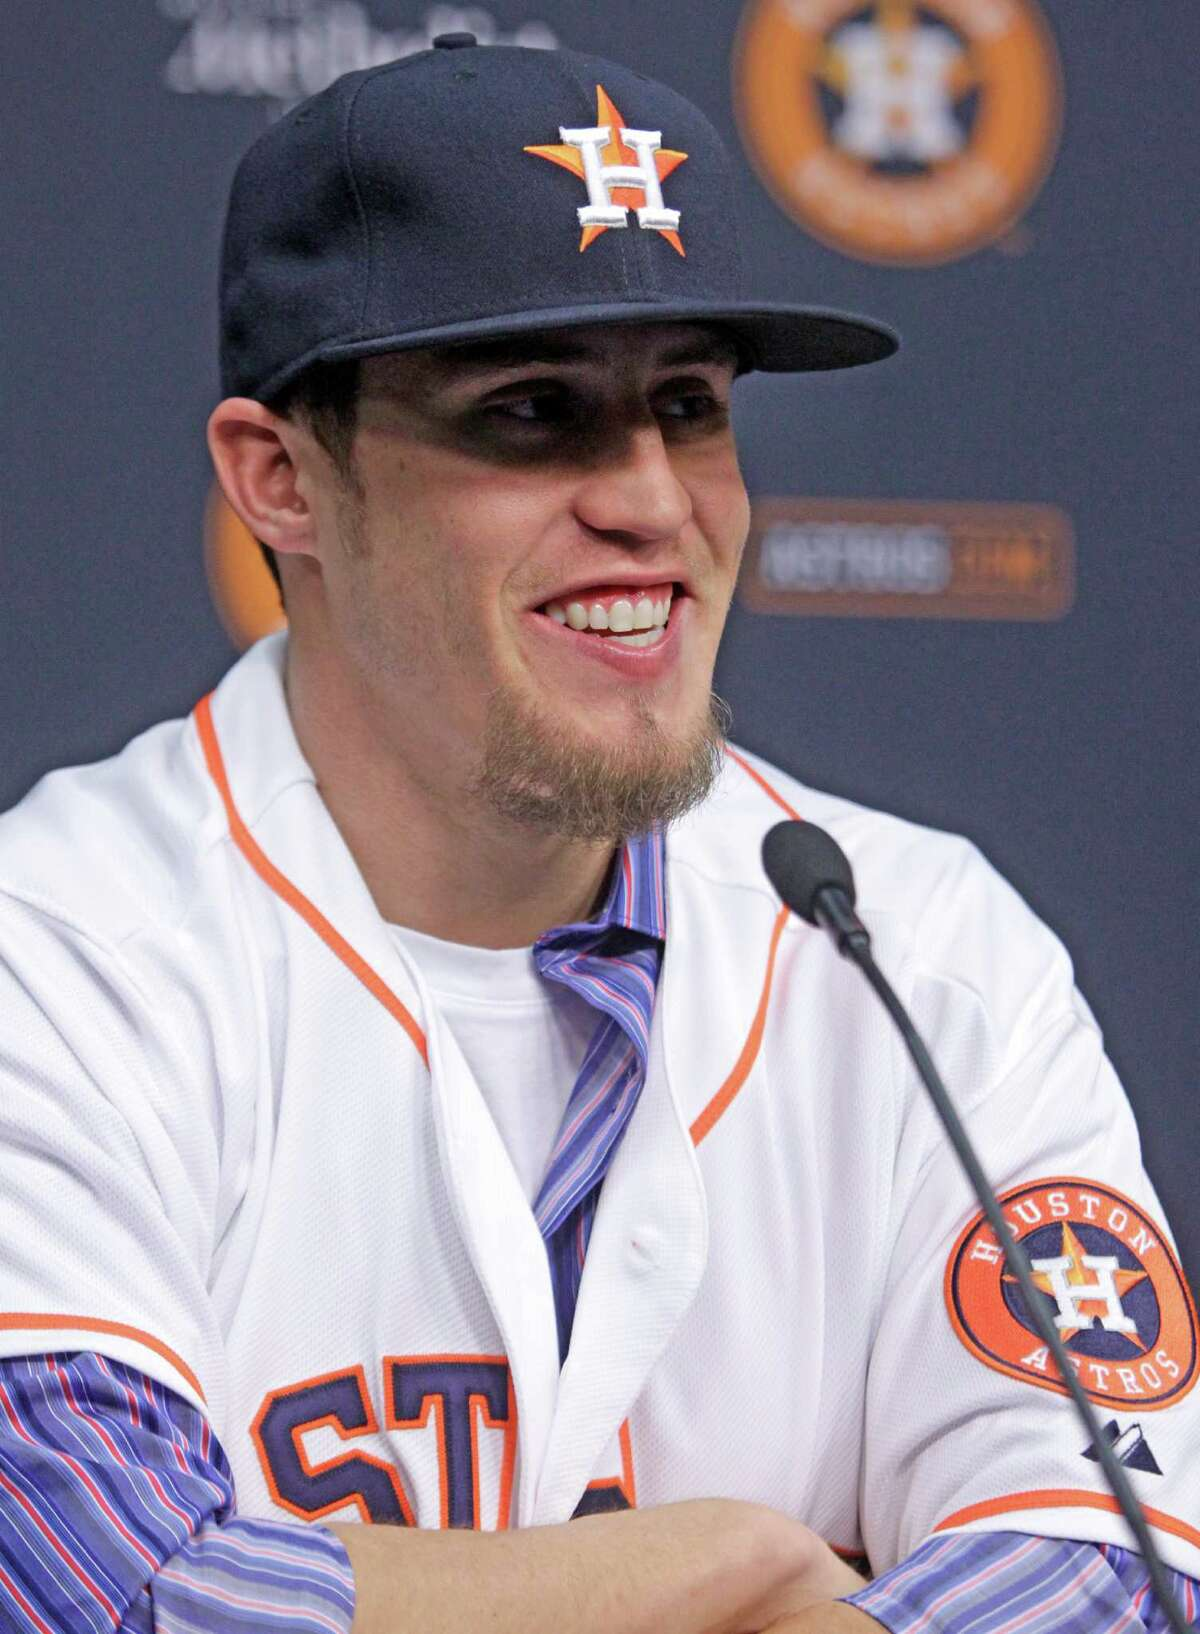 Houston Astros newly-acquired pitcher Ken Giles speaks during a news conference at Minute Maid Park Monday, Dec. 14, 2015, in Houston. ( Melissa Phillip / Houston Chronicle )